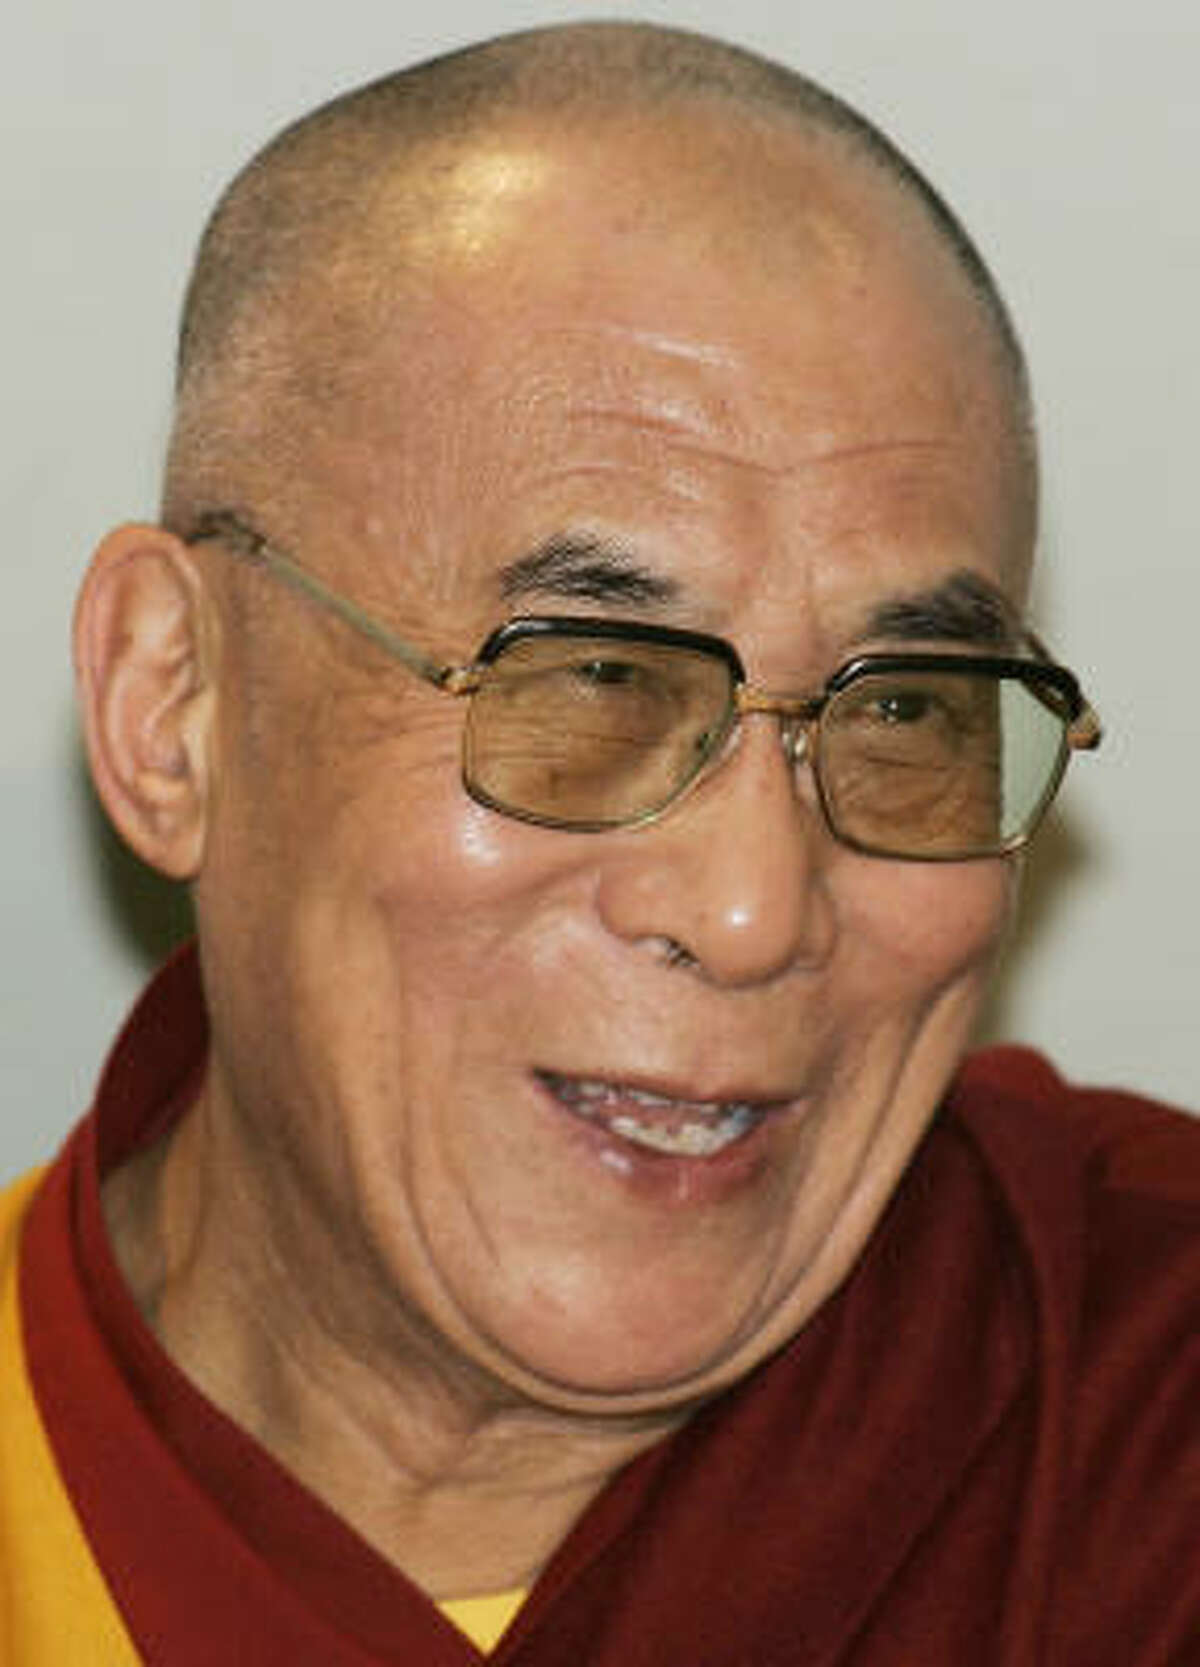 Tibetan spiritual leader Tenzin Gyatso, the 14th Dalai Lama